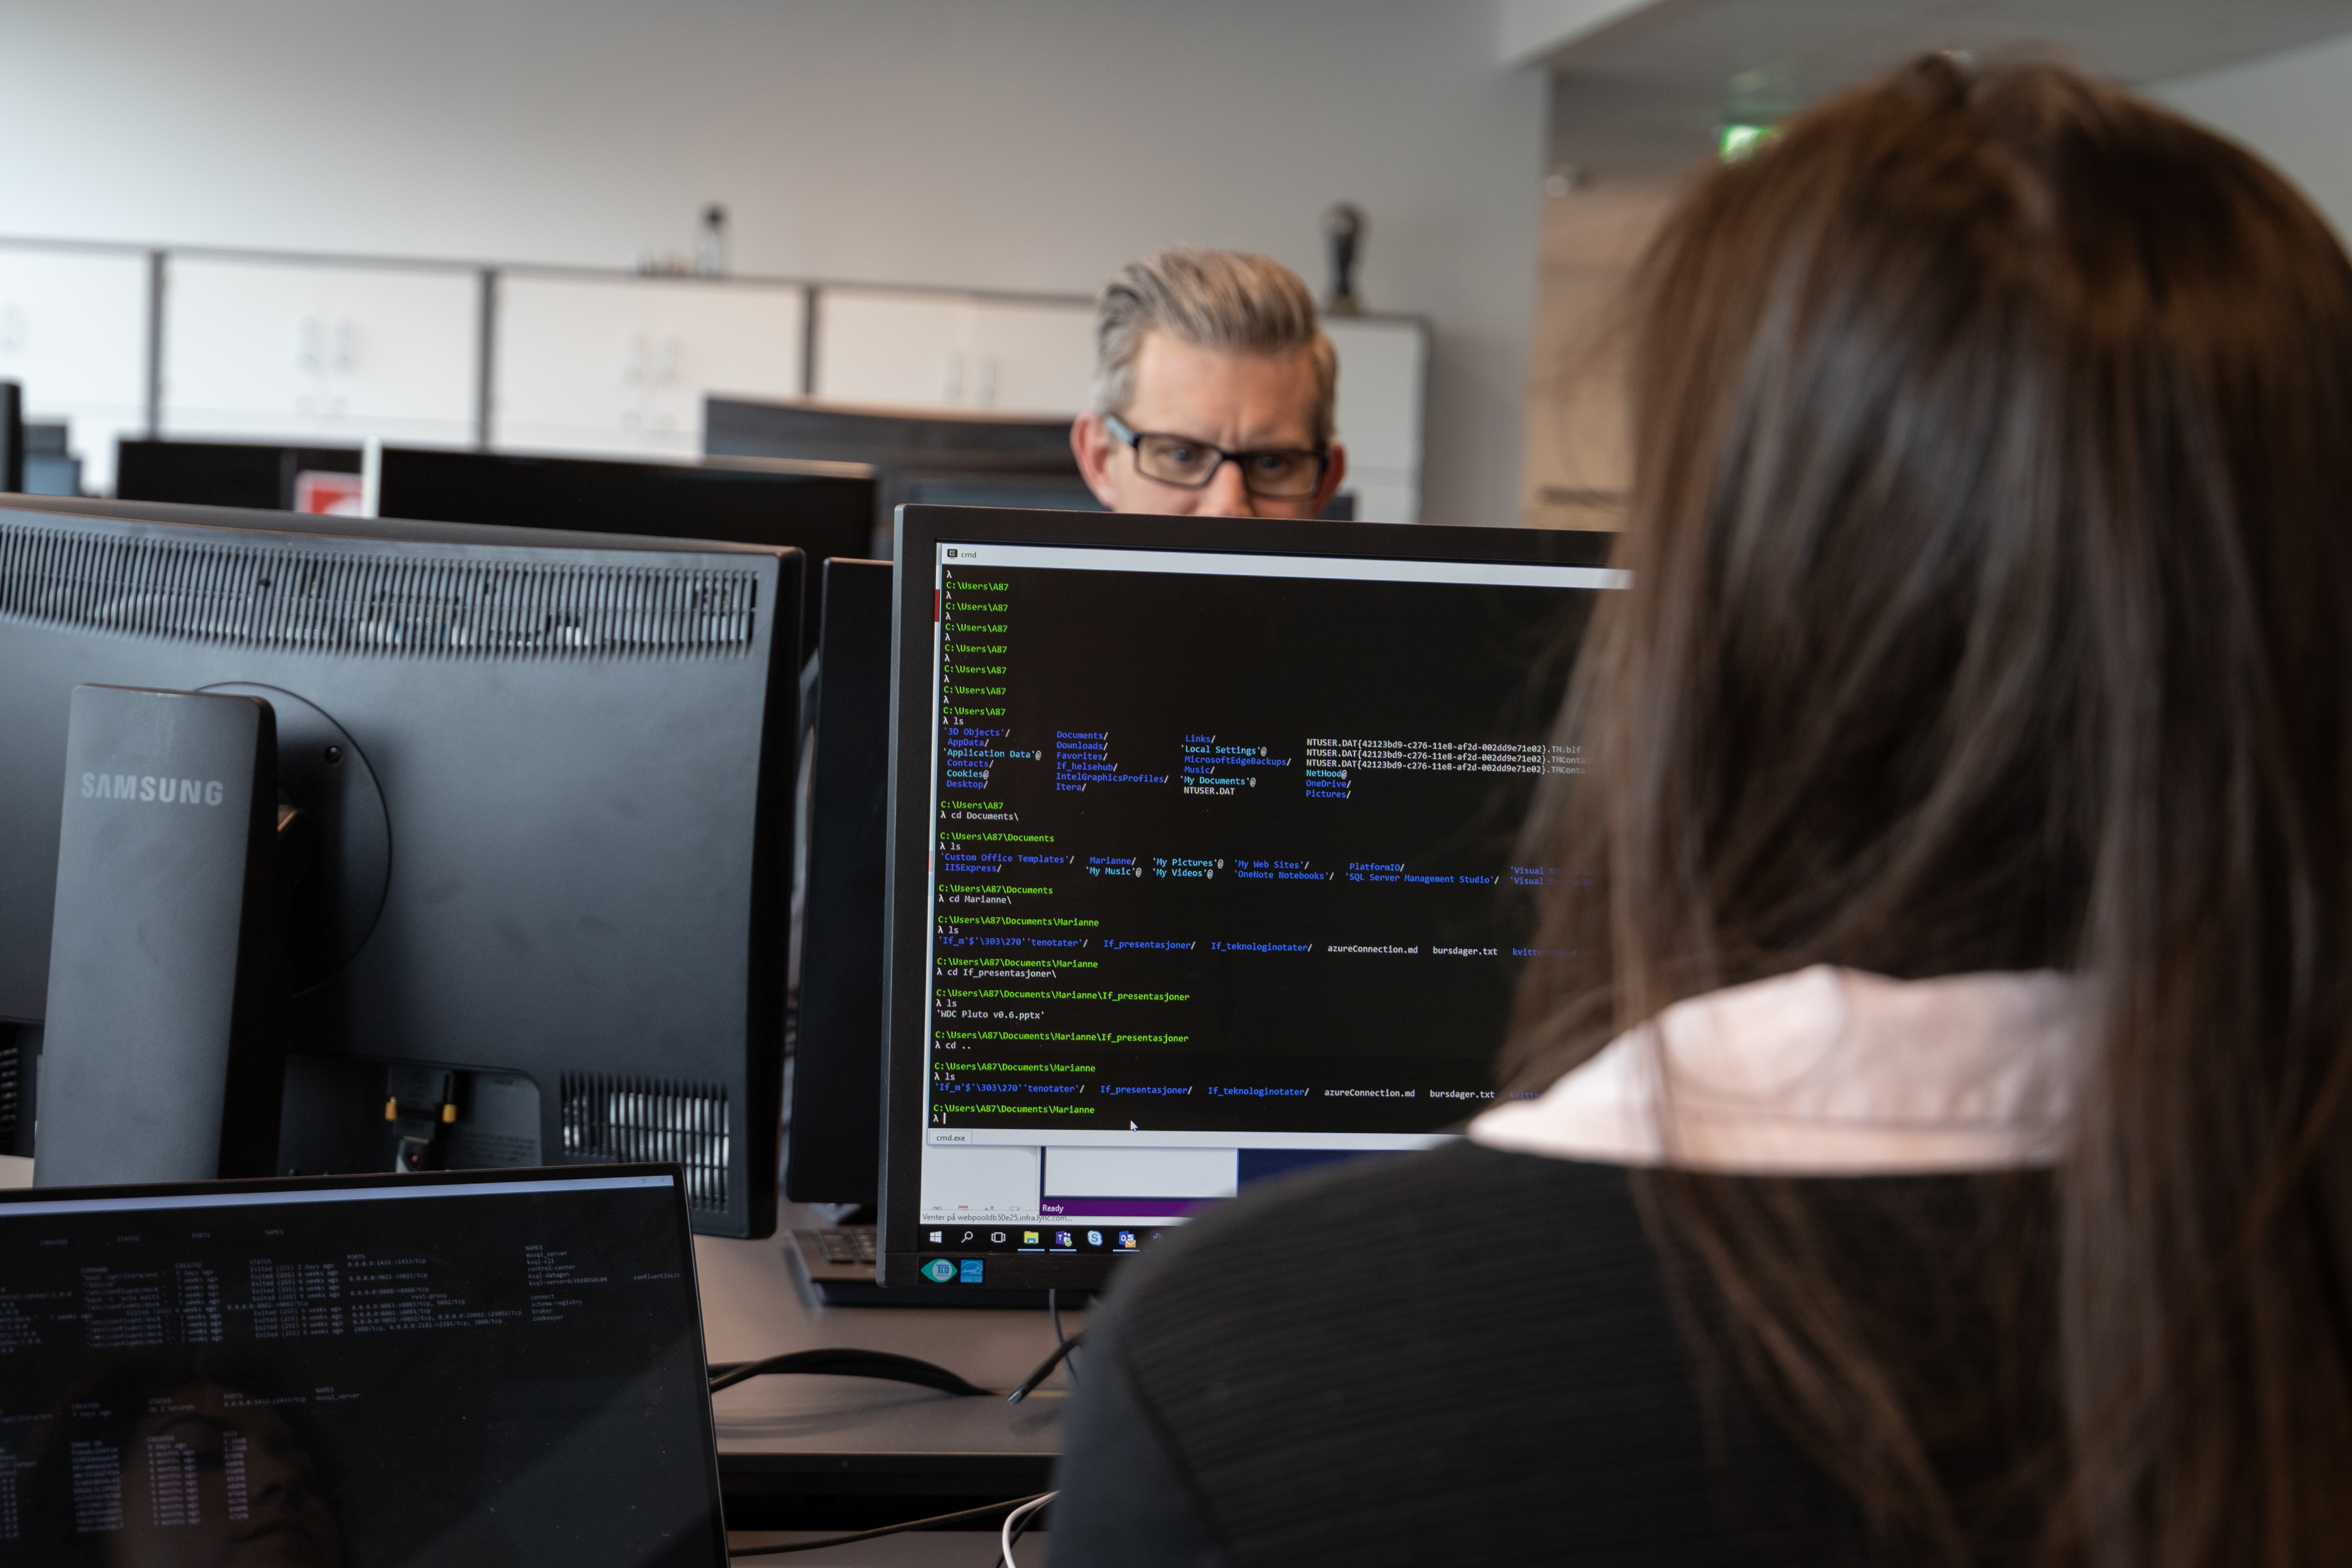 Screen with code, man in background